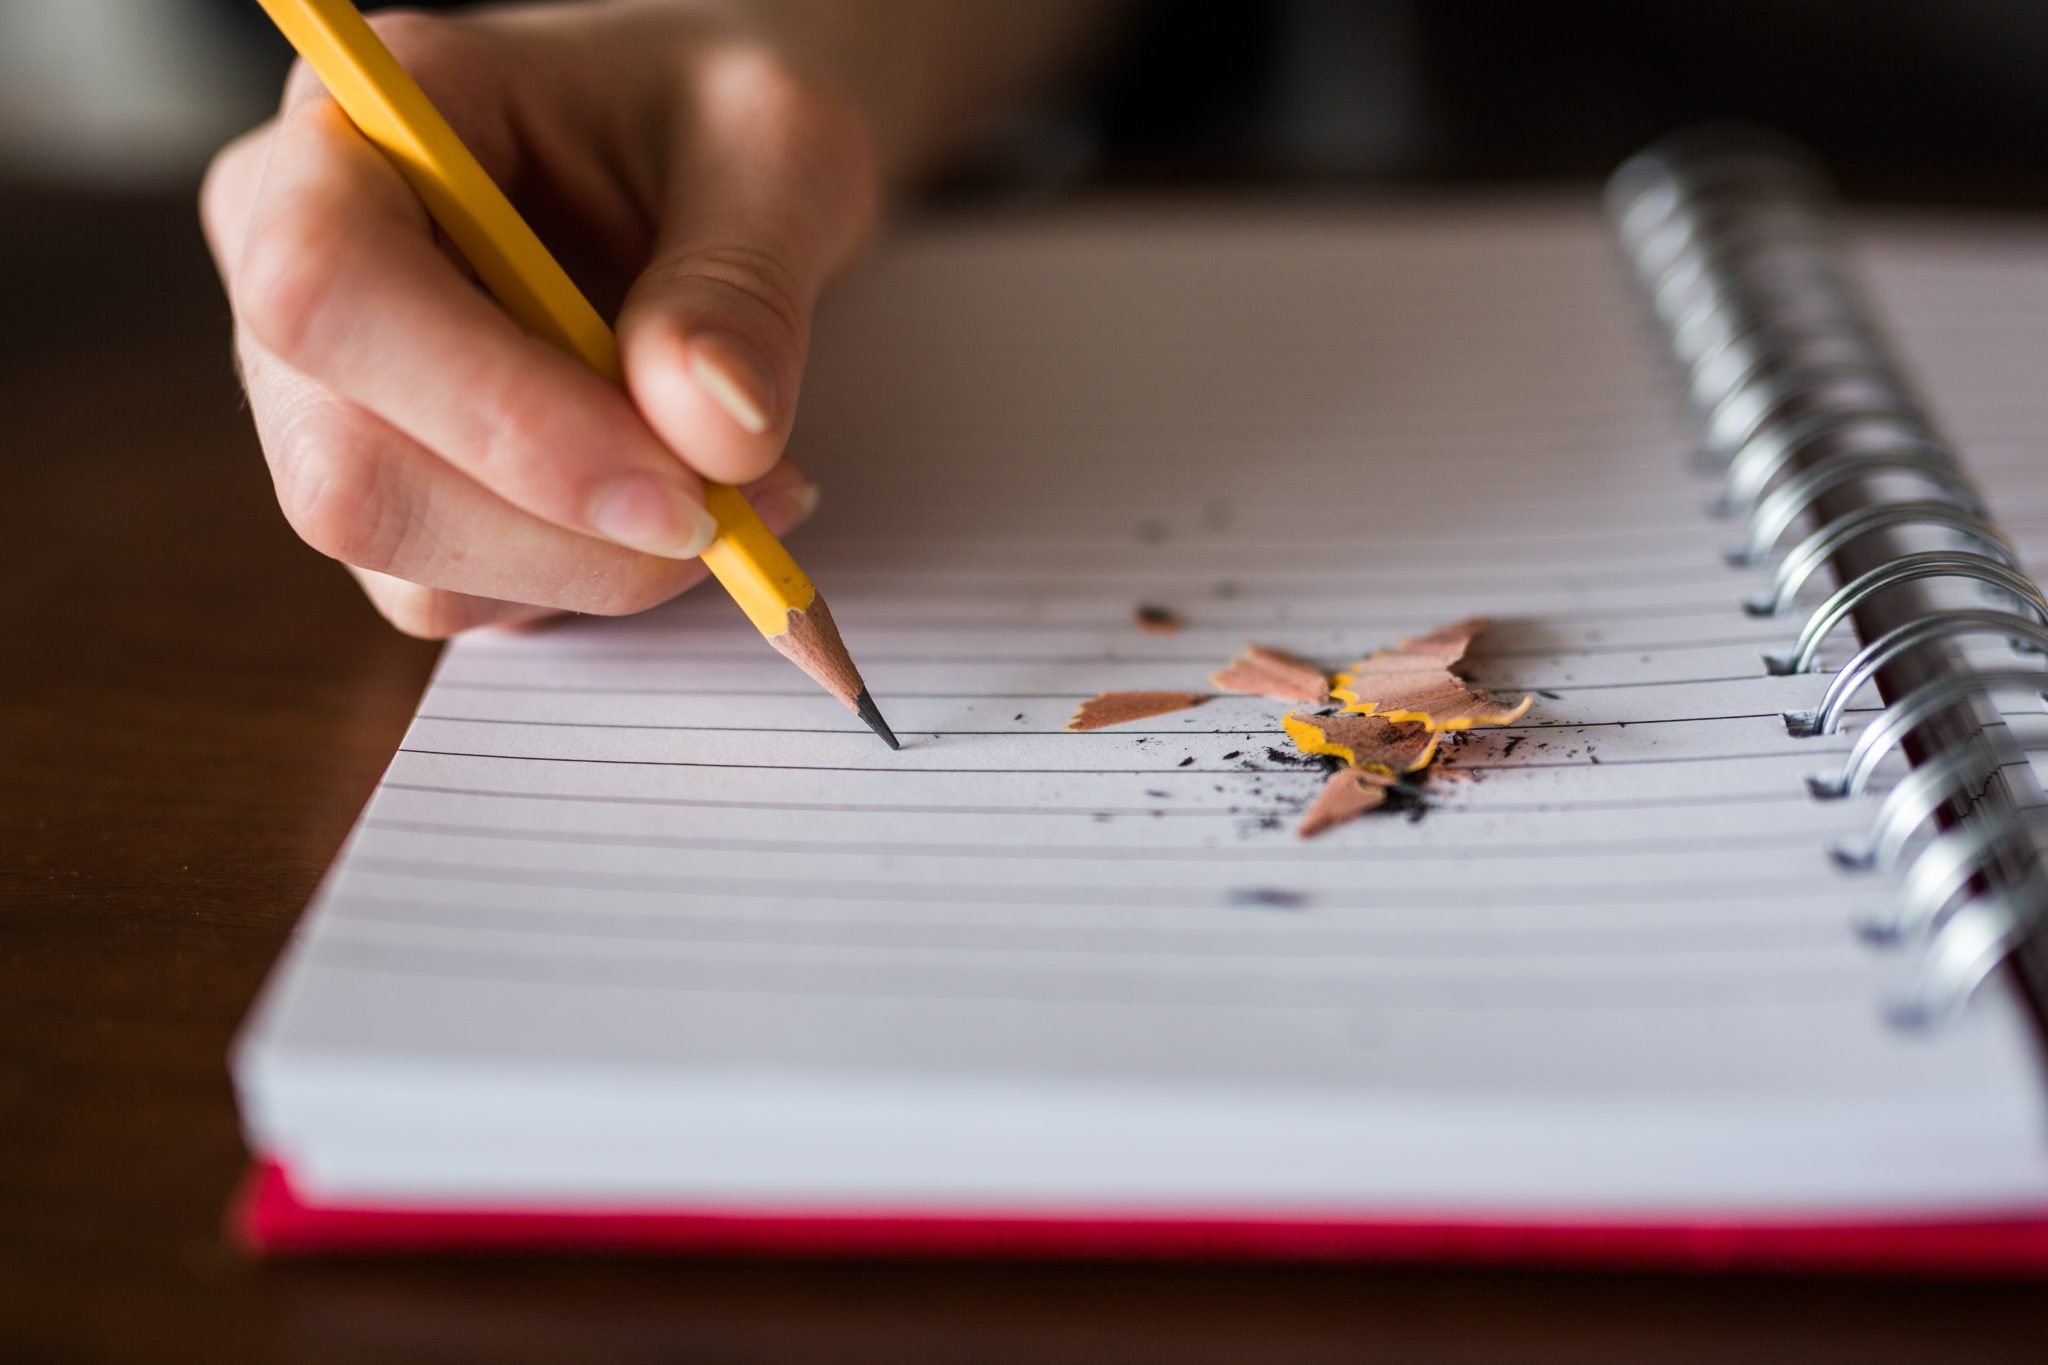 Freelance writer with writer's block needing some writing tips with their hand holding a pencil with pencil shavings on an empty notebook